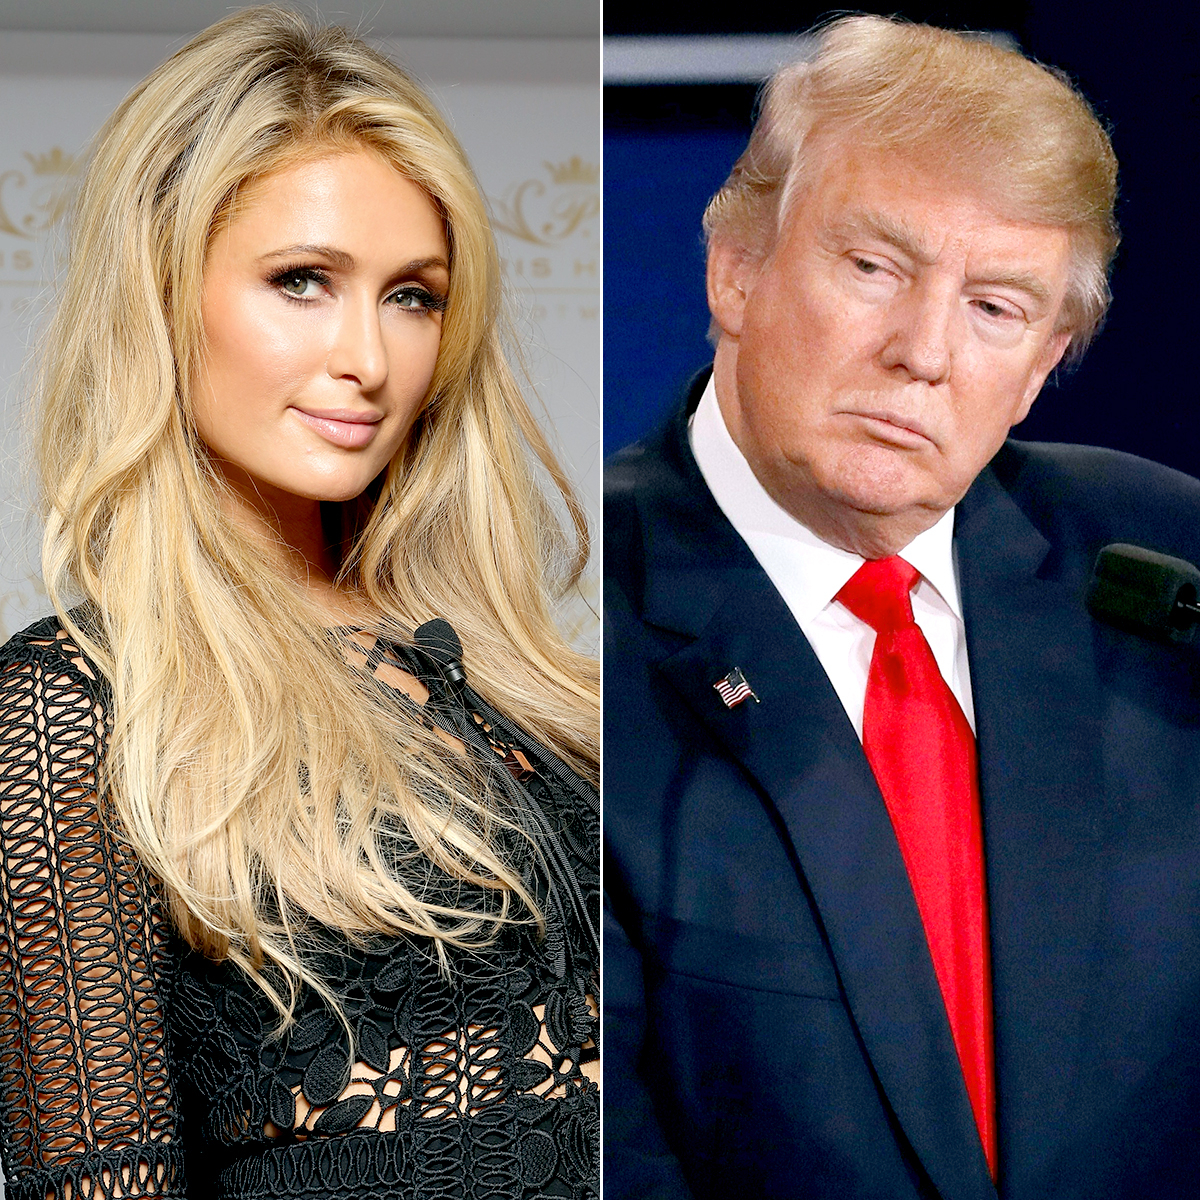 Victor Chavez/WireImage; MARK RALSTON/AFP/Getty Images Paris Hilton and Donald Trump